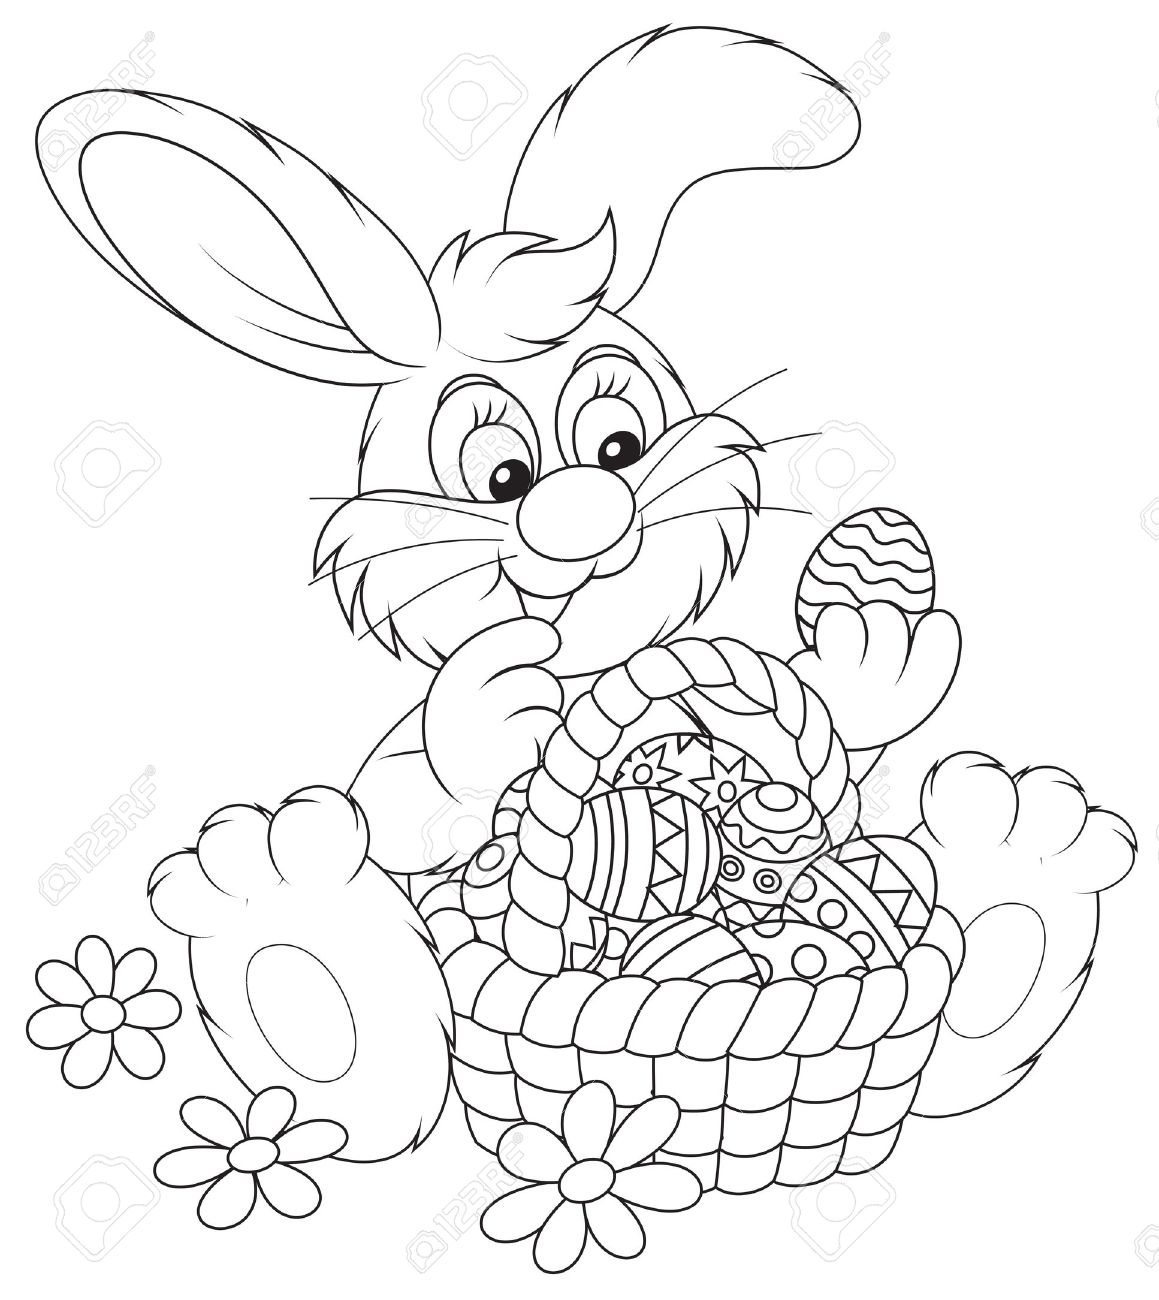 1159x1300 Modest Easter Bunny Drawings Top Gallery Ideas